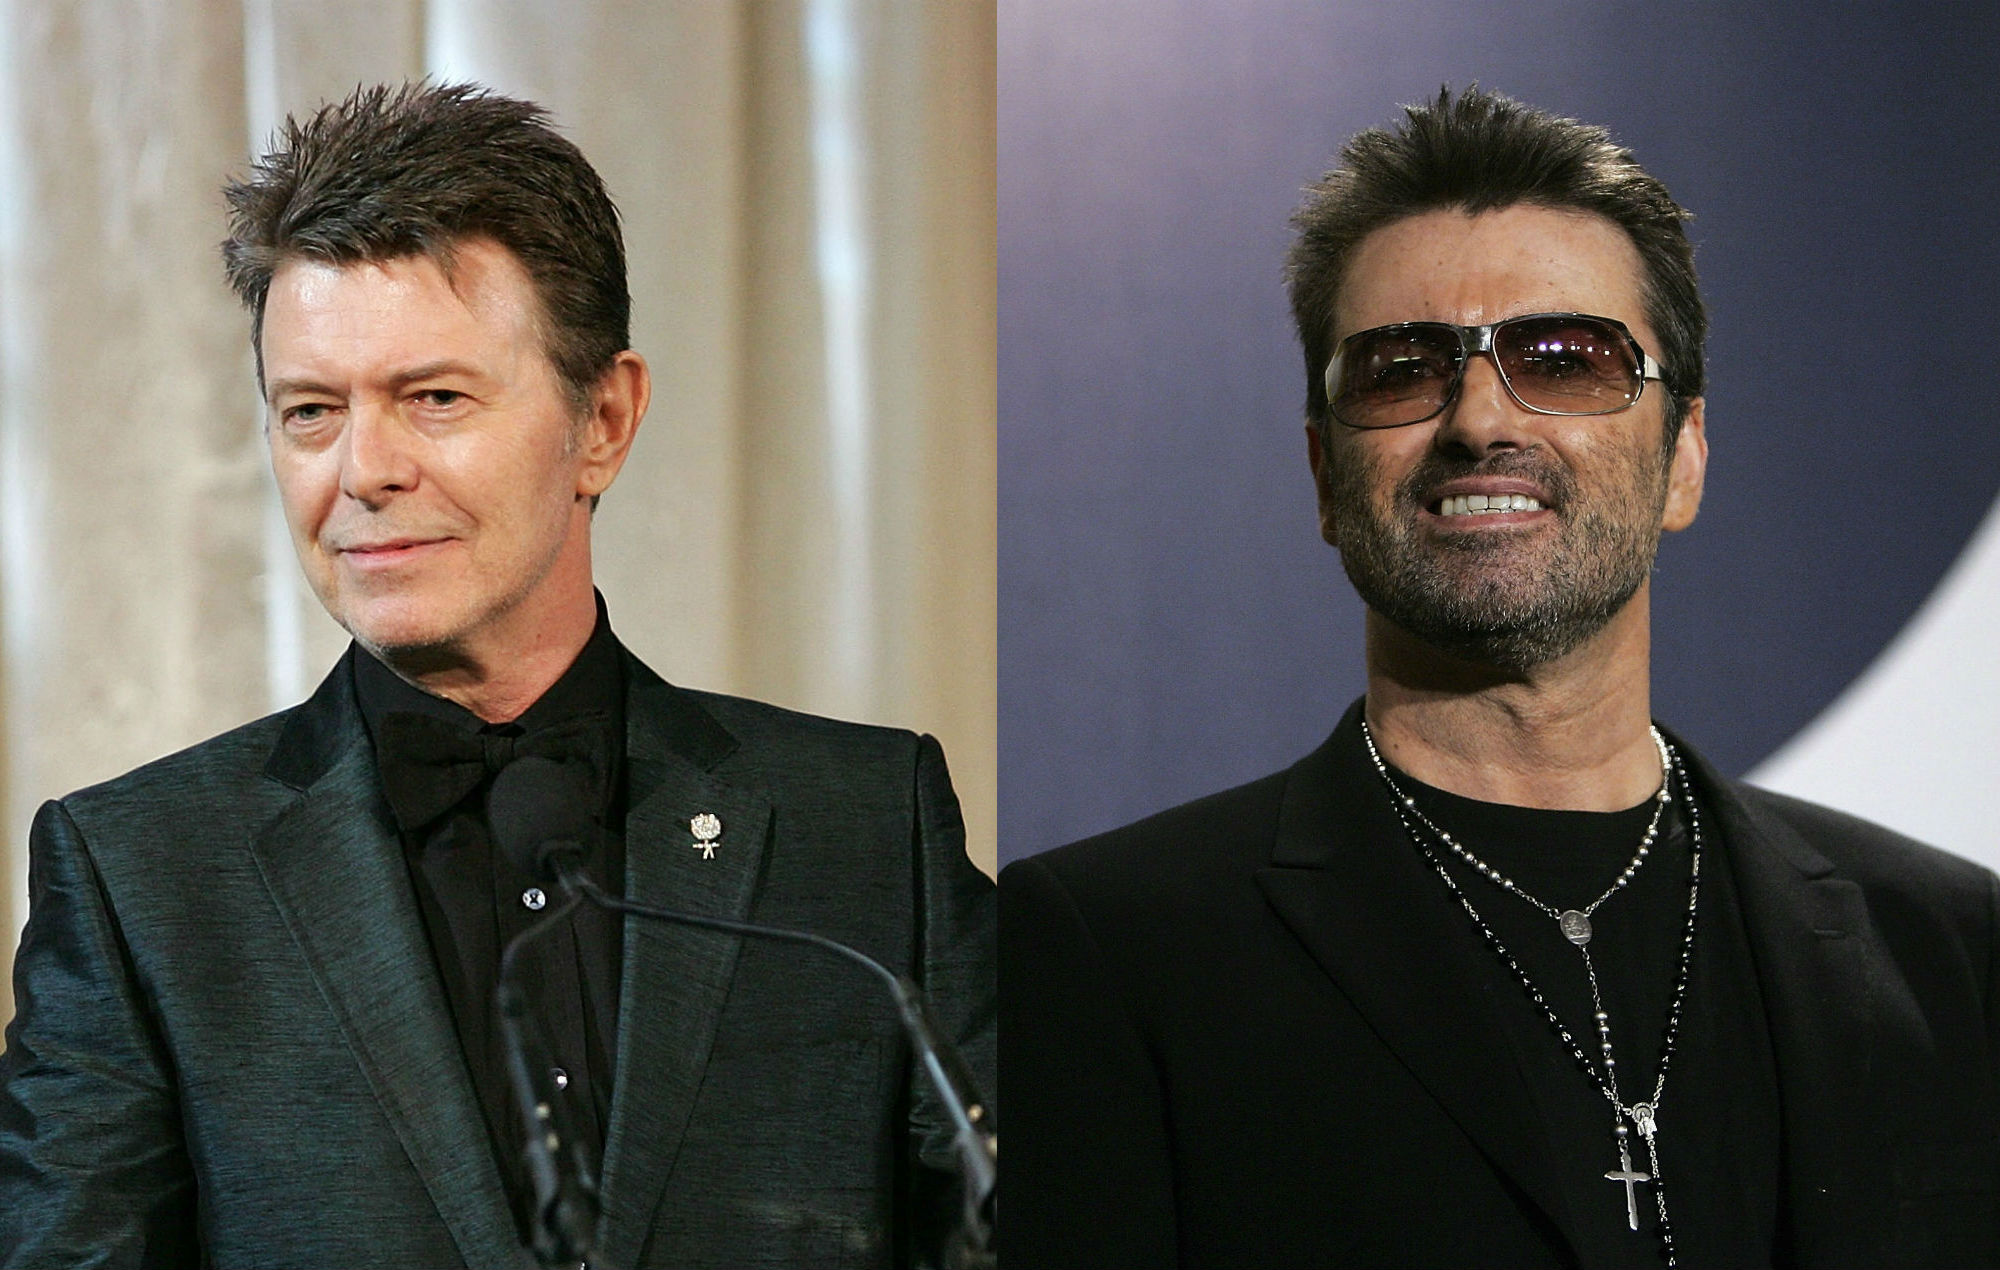 David Bowie and George Michael named among most influential people in British history